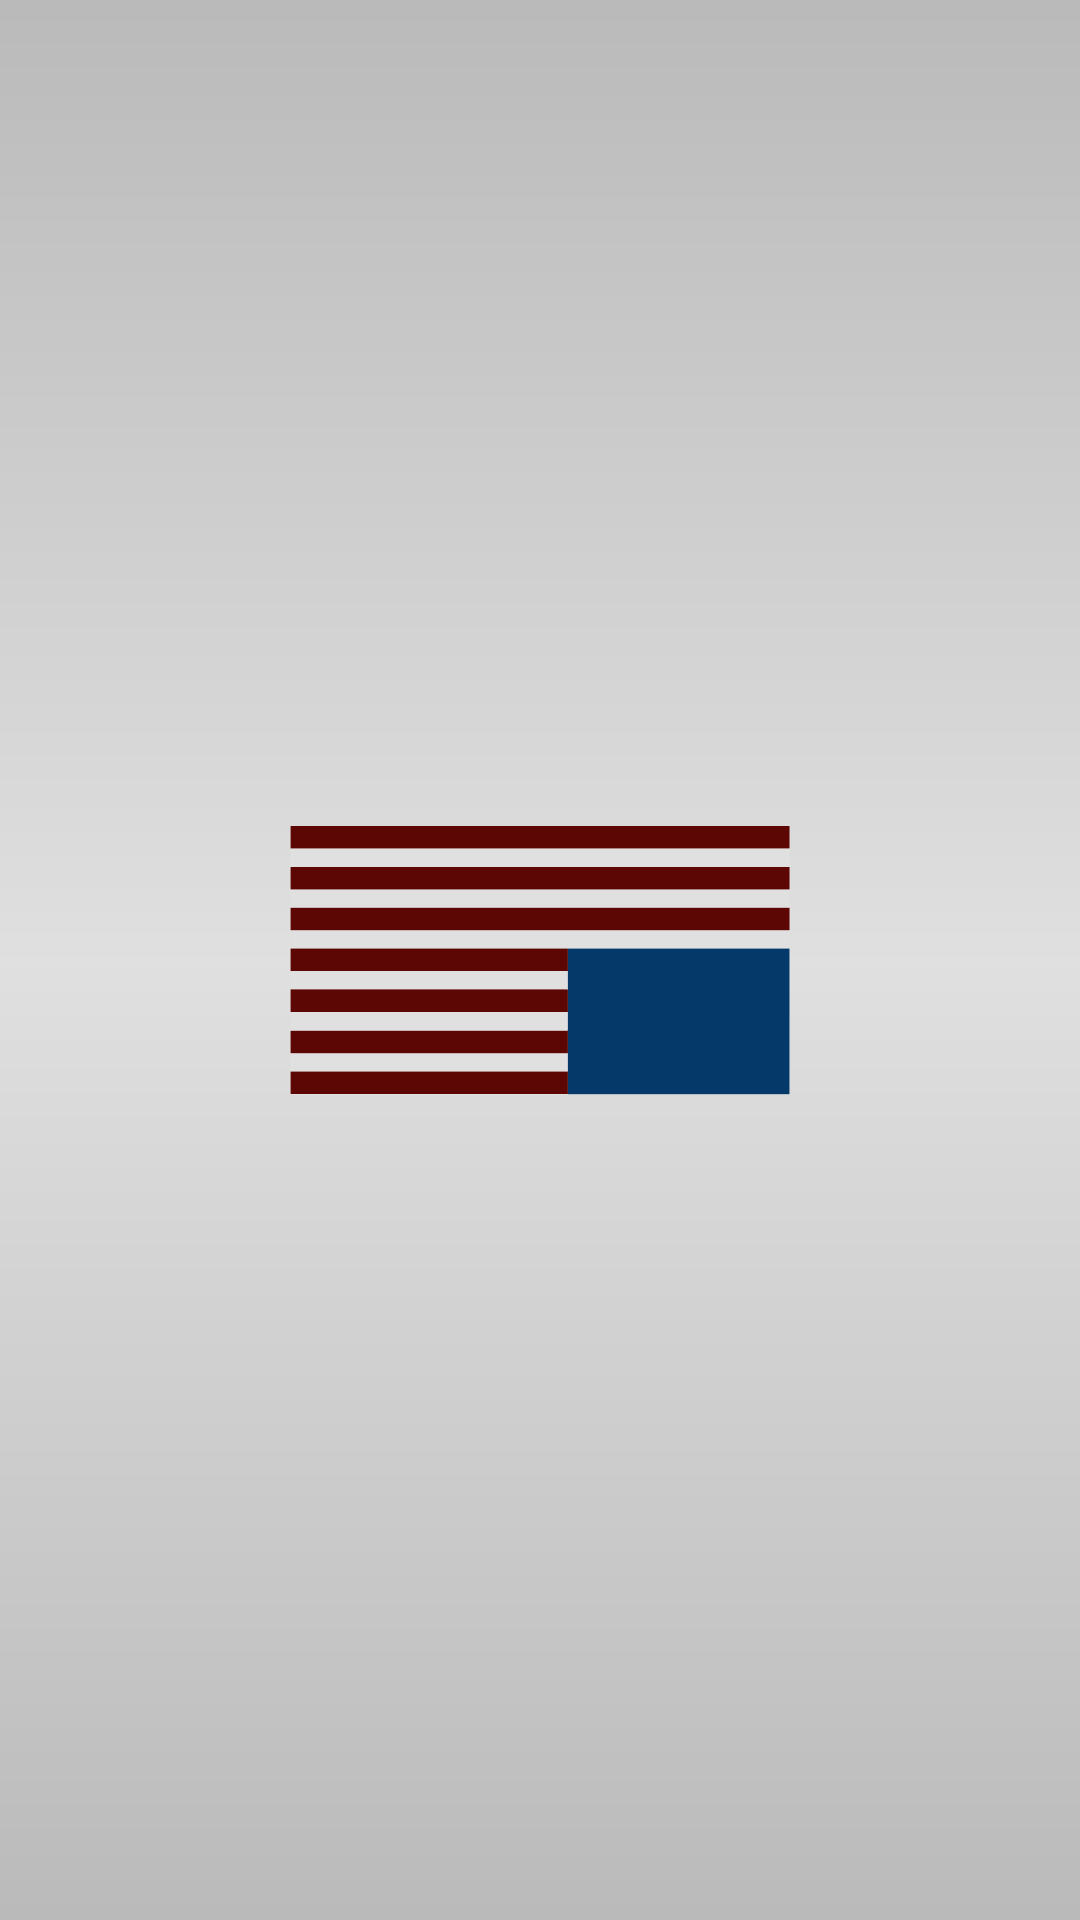 House Of Cards Iphone Wallpaper Posted By Samantha Peltier